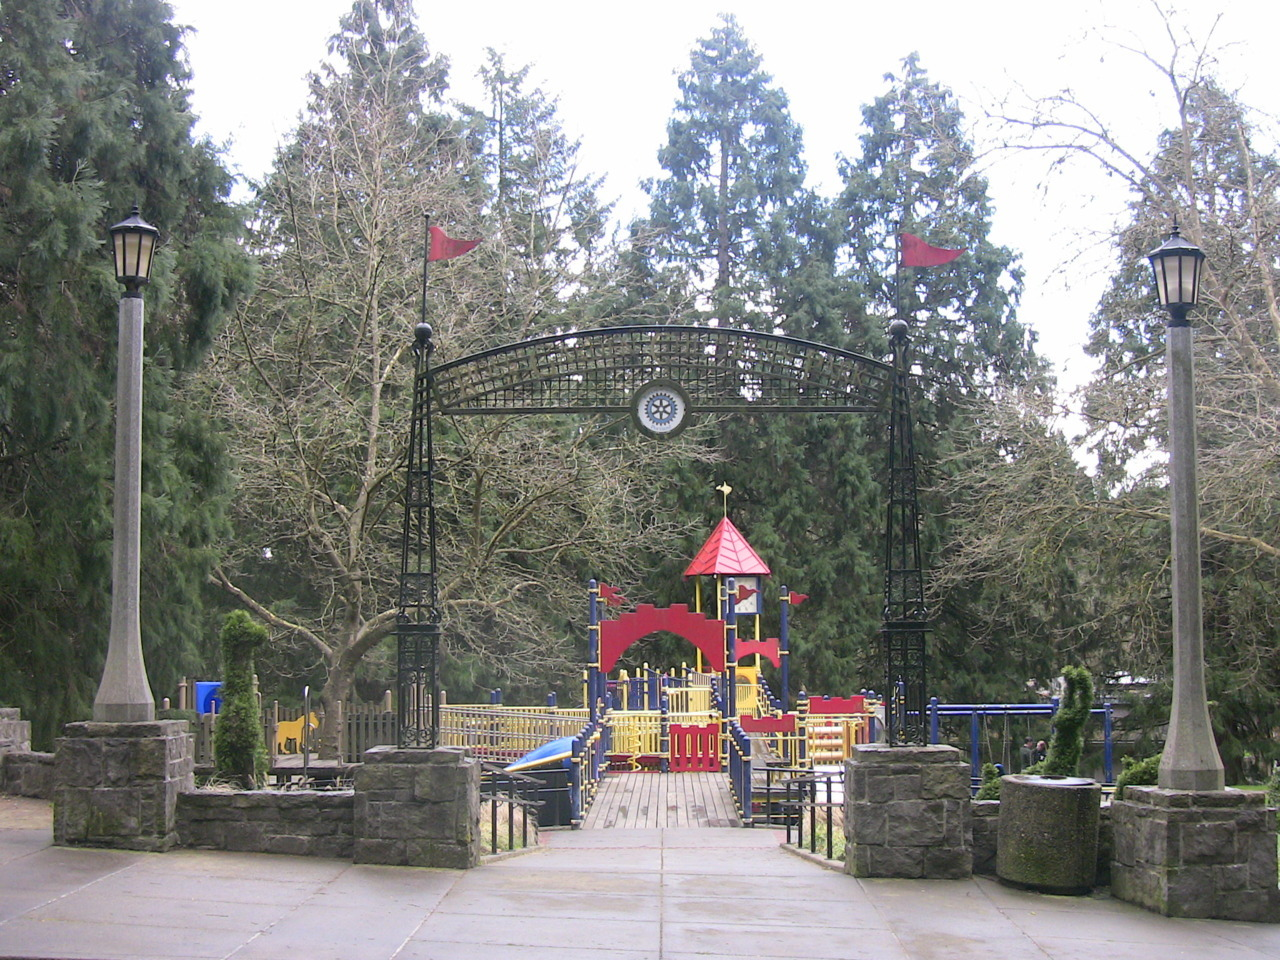 The Rose Garden Children's Park, inside Washington Park.